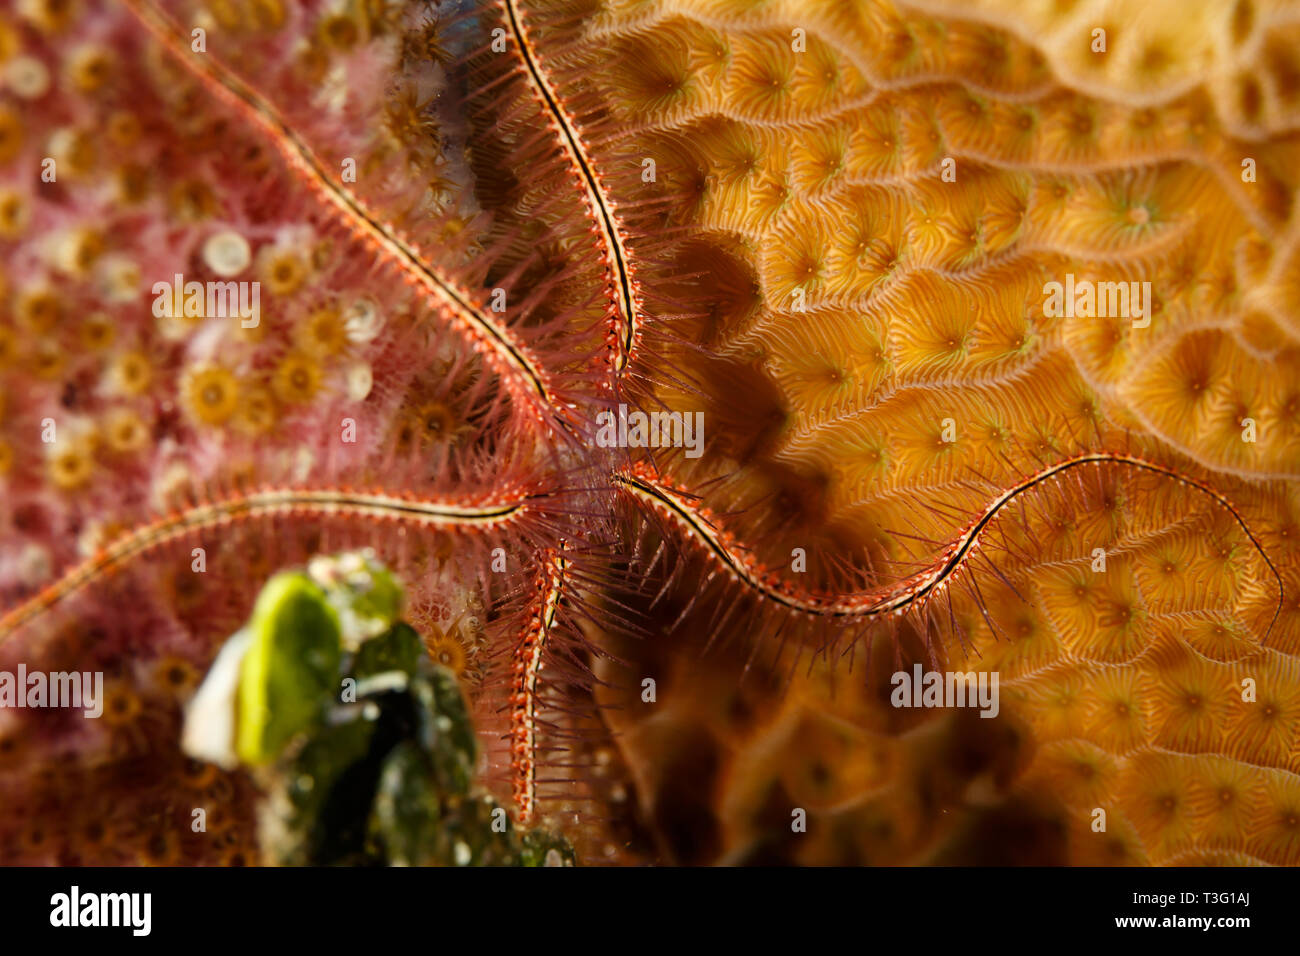 Close up of Brittle Sea Star, Brittle stars or ophiuroids, echinoderms, class Ophiuroidea, on a spanish dancer - Stock Image